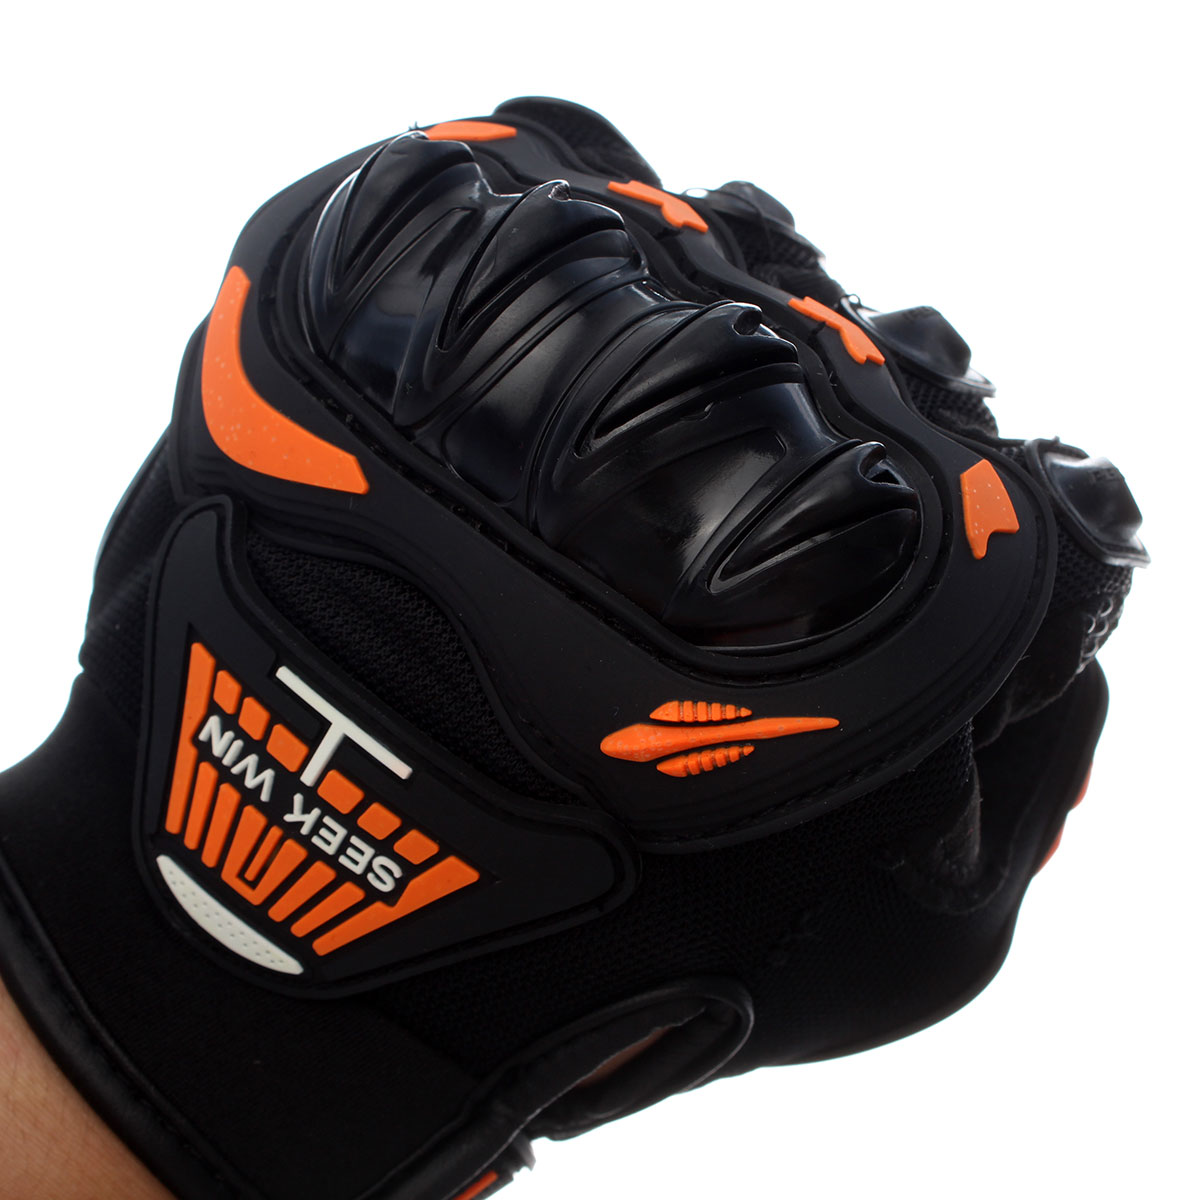 Motorcycle gloves singapore - Gloves Hand Inches Xxl 10 11cm Xl 10 5 11cm L 10 10 5cm M 9 5 10cm Manual Measure Error Rang 0 5 1 0cm Thanks For Your Understanding